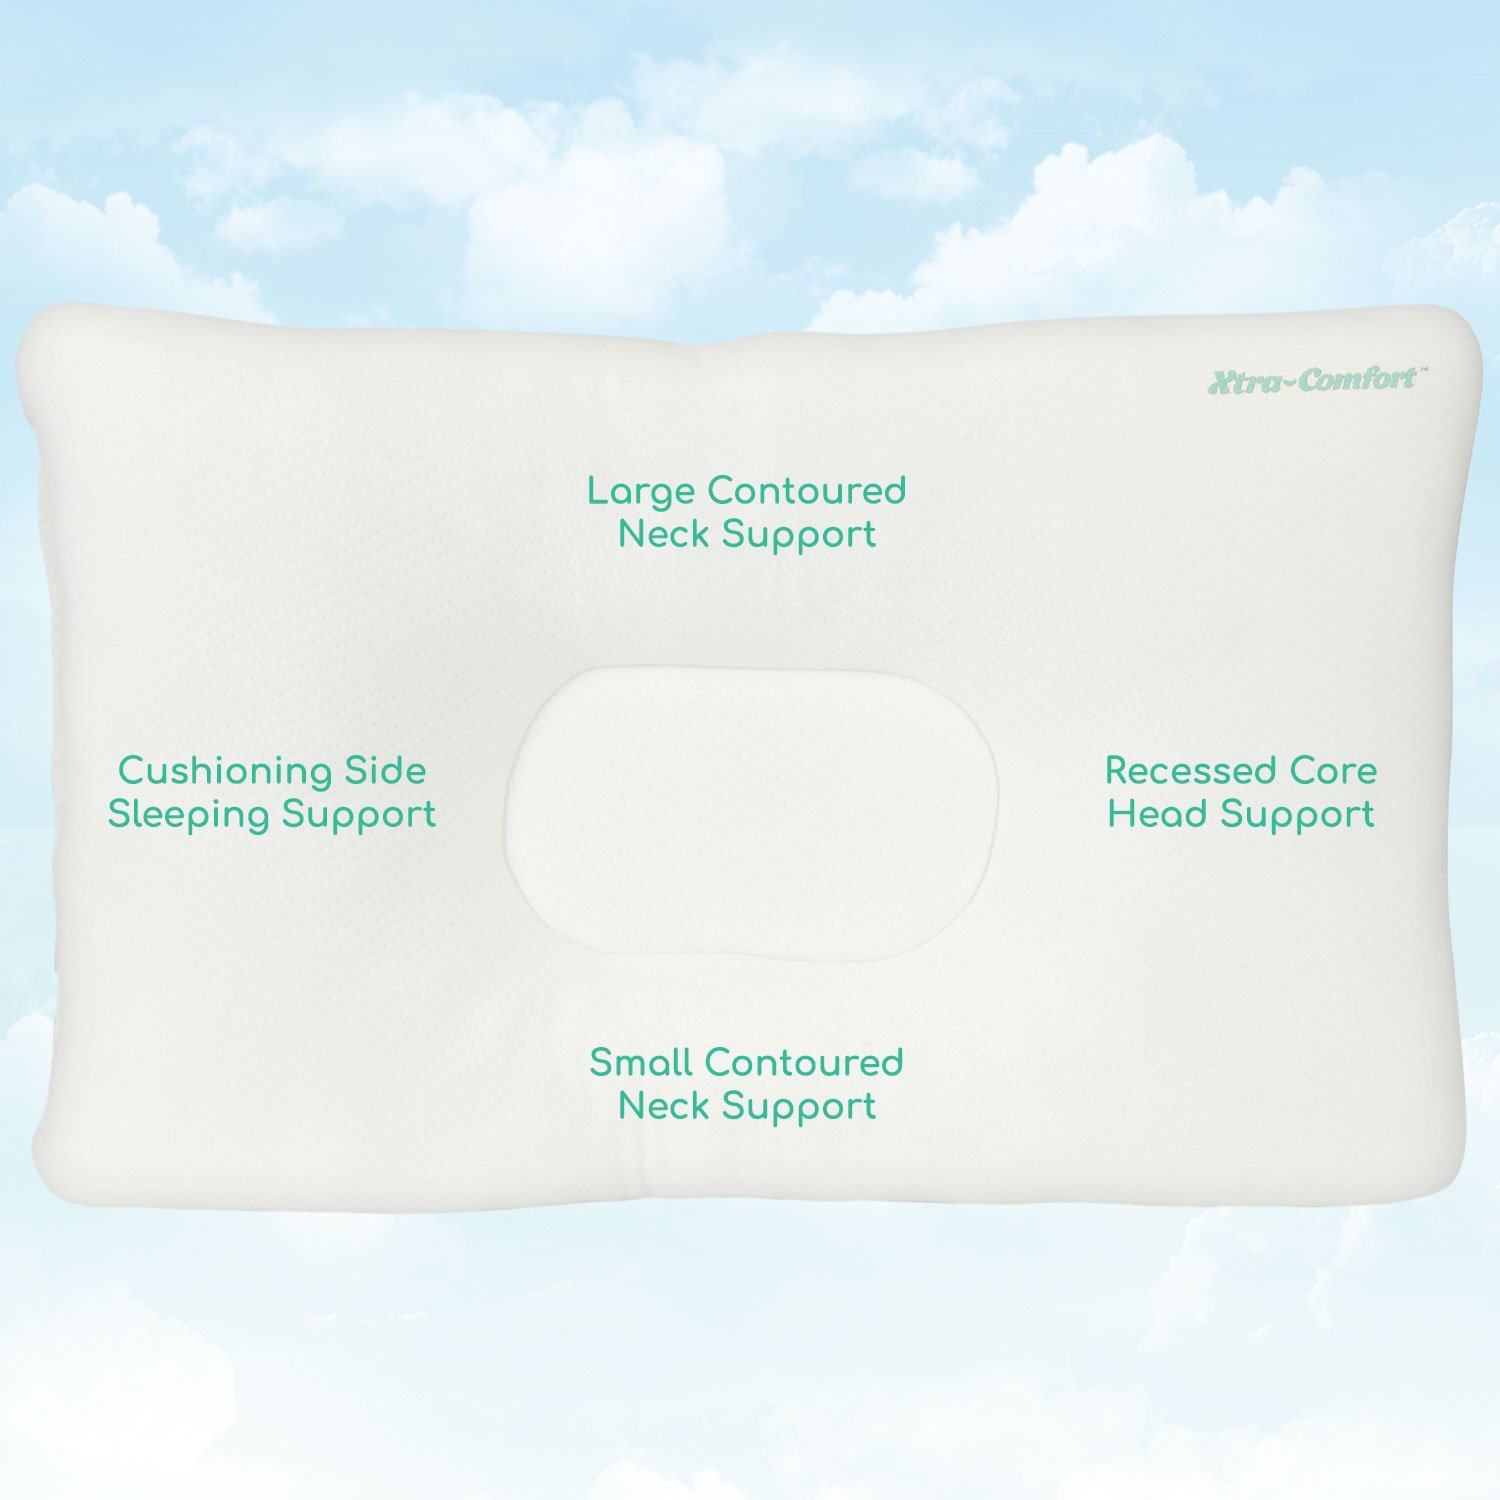 spine sleepers neck back best chiropractic support experience dp a amazon alignment com and pillow oml bodymed for side spondylosis cervical